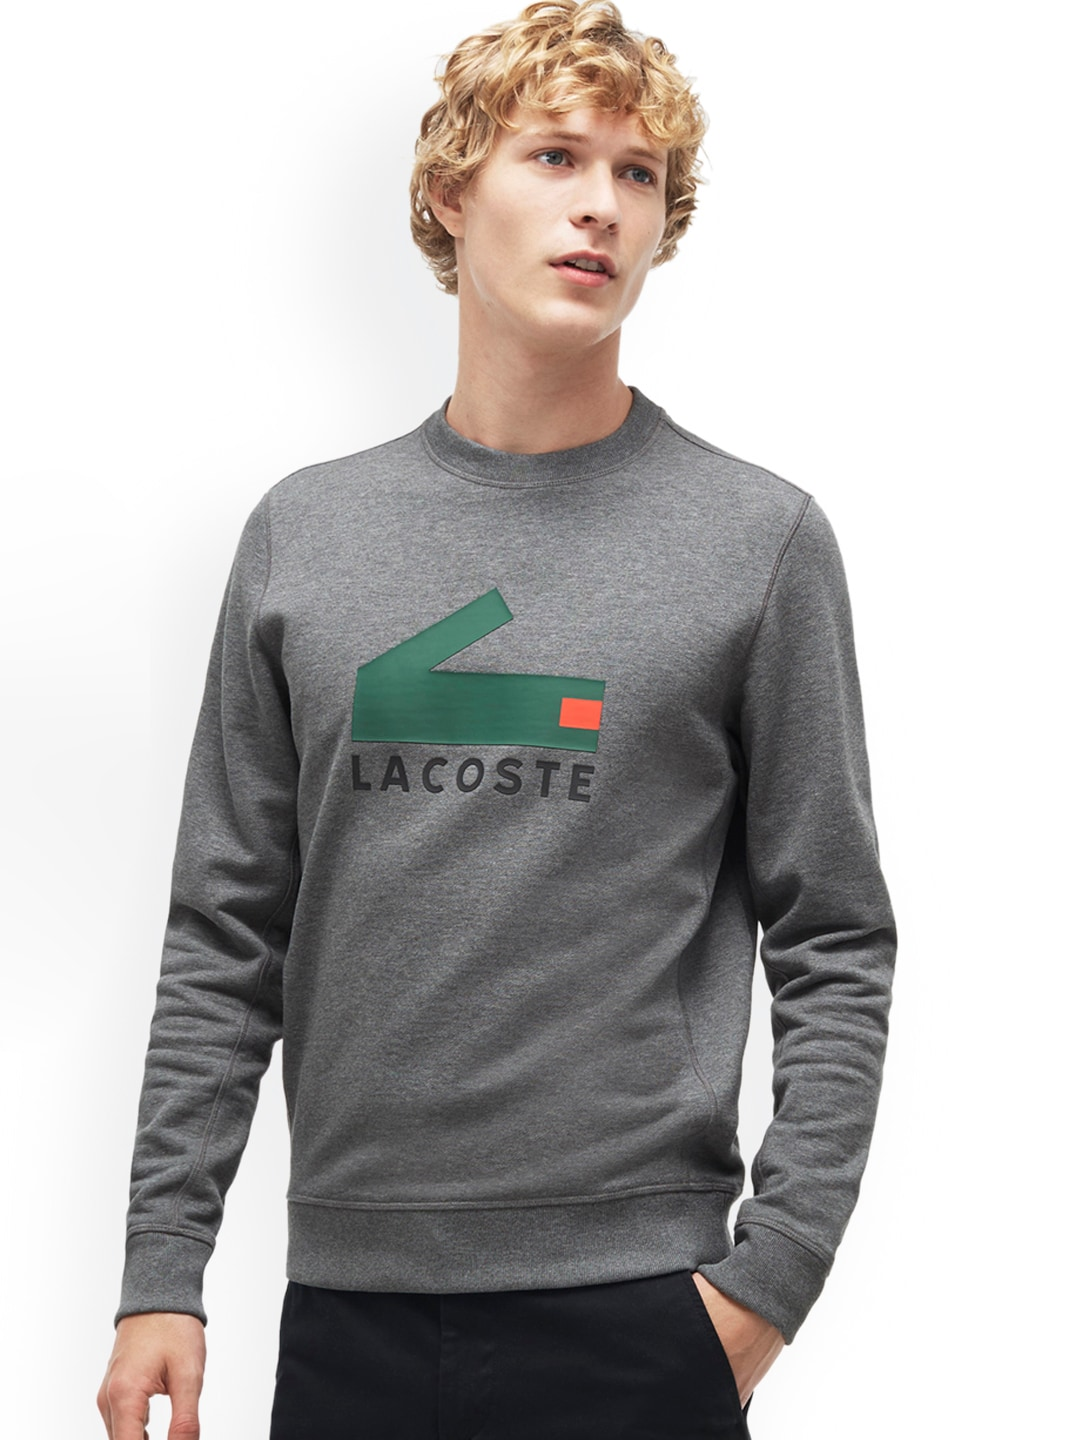 02a8b35296c2 Lacoste Sweatshirts - Buy Lacoste Sweatshirts online in India